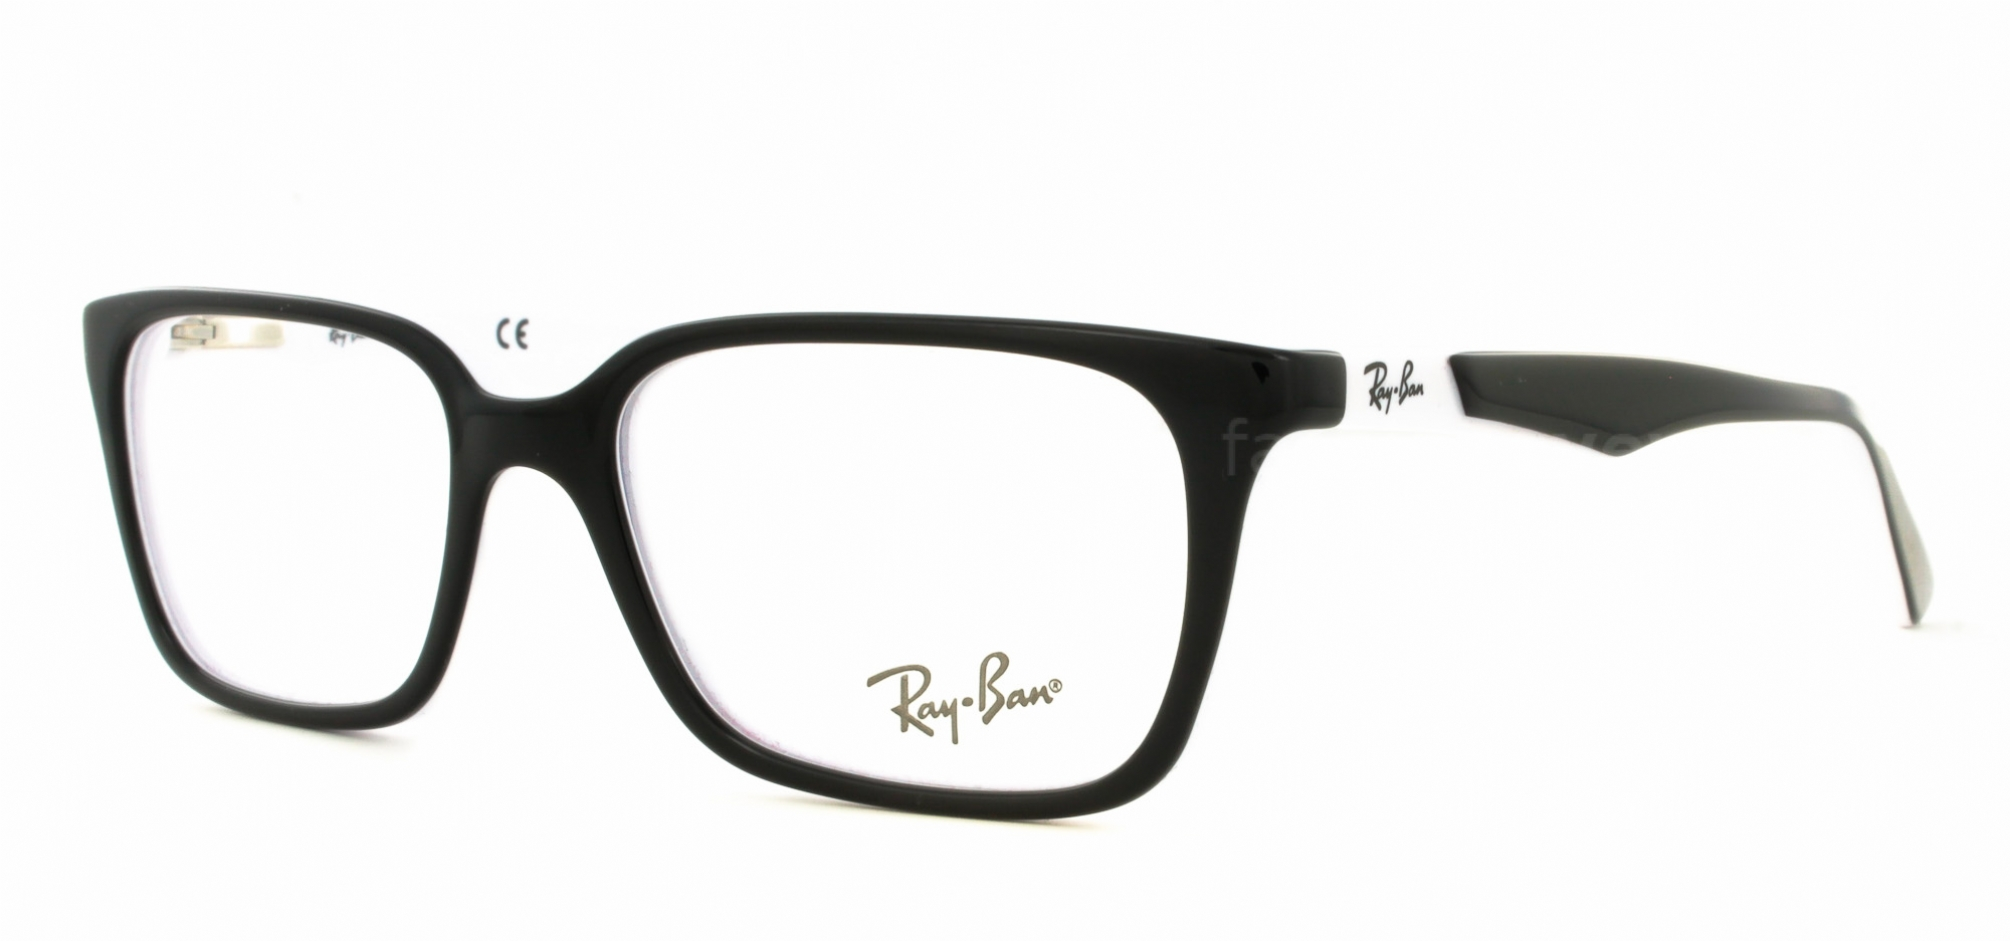 6efb289cb8 Junior Ray Ban Prescription Glasses « Heritage Malta